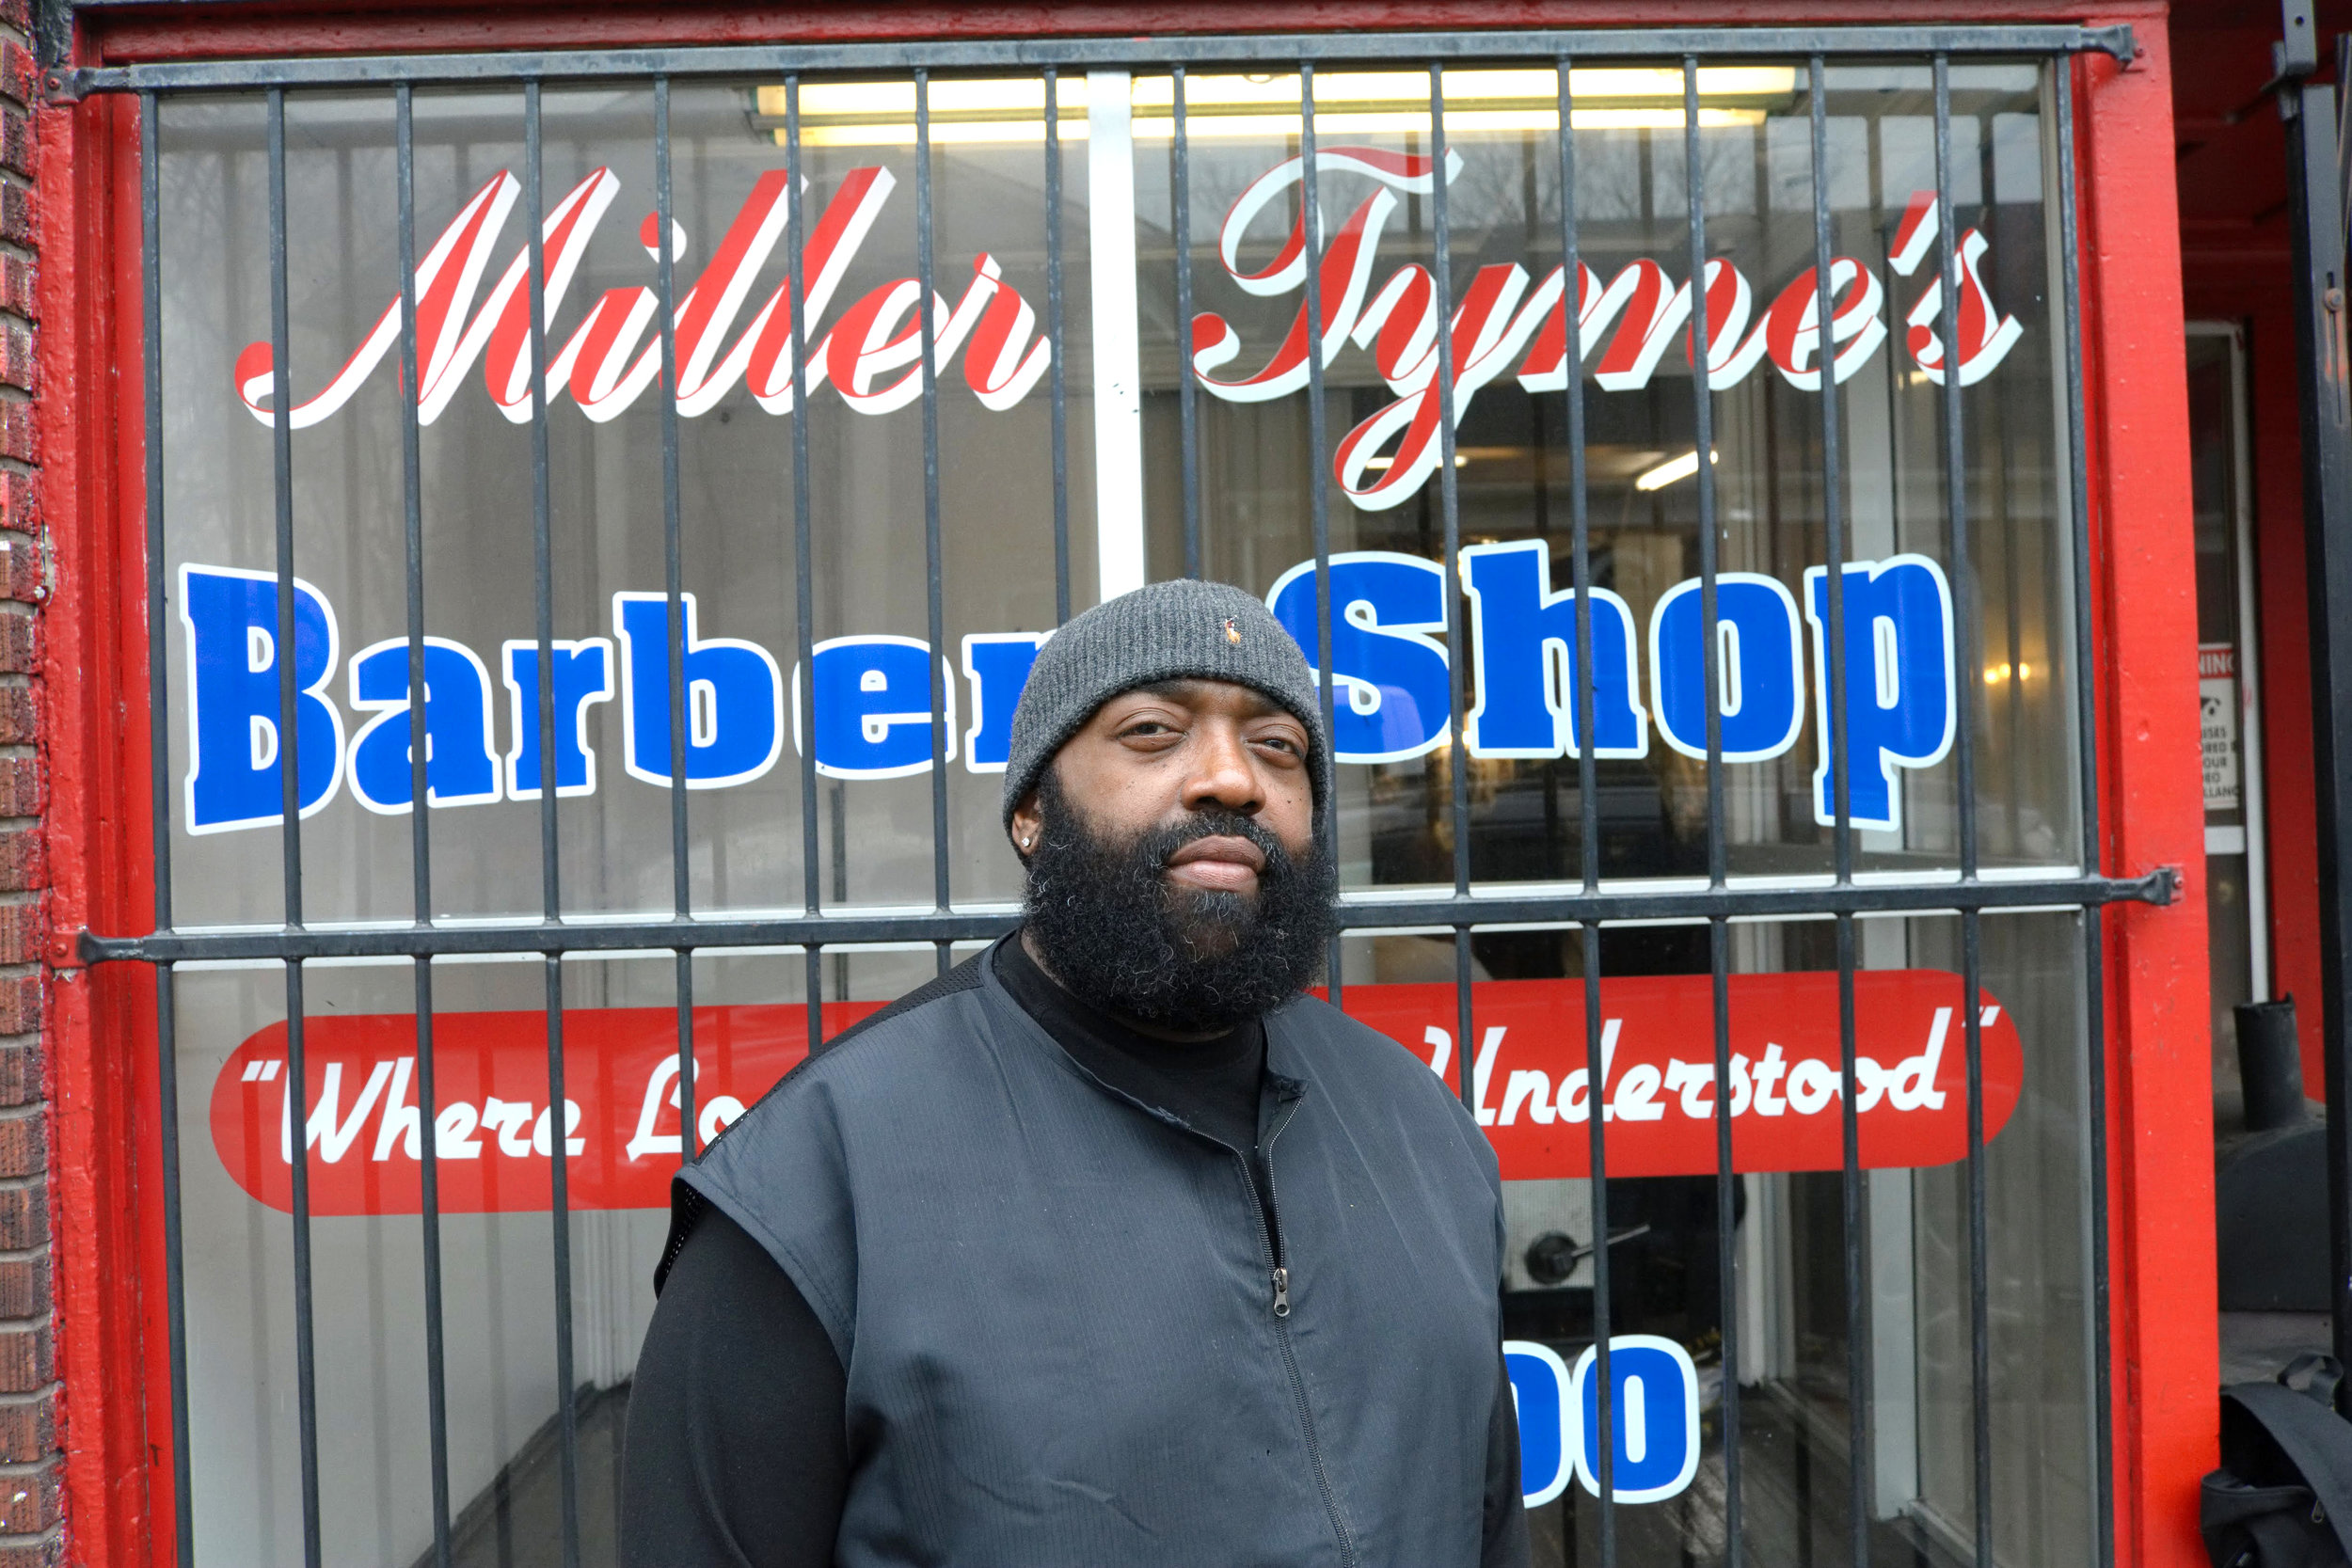 """""""What got me into barbering? There was these older guys, by Chickasaw, Markie D and Big Norm. I swept hair for them, so I wanted to be like them. One of them gave me a pair of clippers and I started cutting hair in my house for a dollar. I was 13 and I'm 47 now. That was a long time ago. I didn't get my barber license until I was 20. I was a youngster and I was intrigued by it.  Well, I was a barber for almost three years, then I started Miller Tyme. What I did was come out of school and I worked for a man named Brown Sugar off 8th & Broadway. I learned from him how to run a business and how not to run a business. After that, I worked at Fadz on 23rd & Broadway. I opened that up for a gentleman and that's what taught me how to open a shop because I opened that one up for him. After that, the rest is history. I've been having Miller Tyme for 23 years.  My grandparent instilled in me to treat everybody fair and that's why business keeps coming back. Yeah, they instilled in me to treat everybody fair, do the best I can, and wake up early and come to work. Don't stay in the bed. The early bird gets the worm.  The kids inspire me. A lot of them are lost and some of them are not lost. I wanna reach the ones that are by talking to them and cutting their hair. You know, let them see what I do and maybe follow my footsteps.  My advice to anybody who wants to start a business is to treat people fair. Have firm hours. You want people to get to you. You don't want to come to work at one o'clock, you wanna come early. When you open up your business, open up early and leave late. You gotta do what you gotta do. It's gonna be struggles but opening up early is the best advice. Put that stamp on it and help the community.  The West End needs hope. We need some of these businesses, like Brown Forman and Reynolds, that are in the West End to put something back into and help develop the West End. What are you doing as a big business, that's making billions of dollars, to help the commu"""